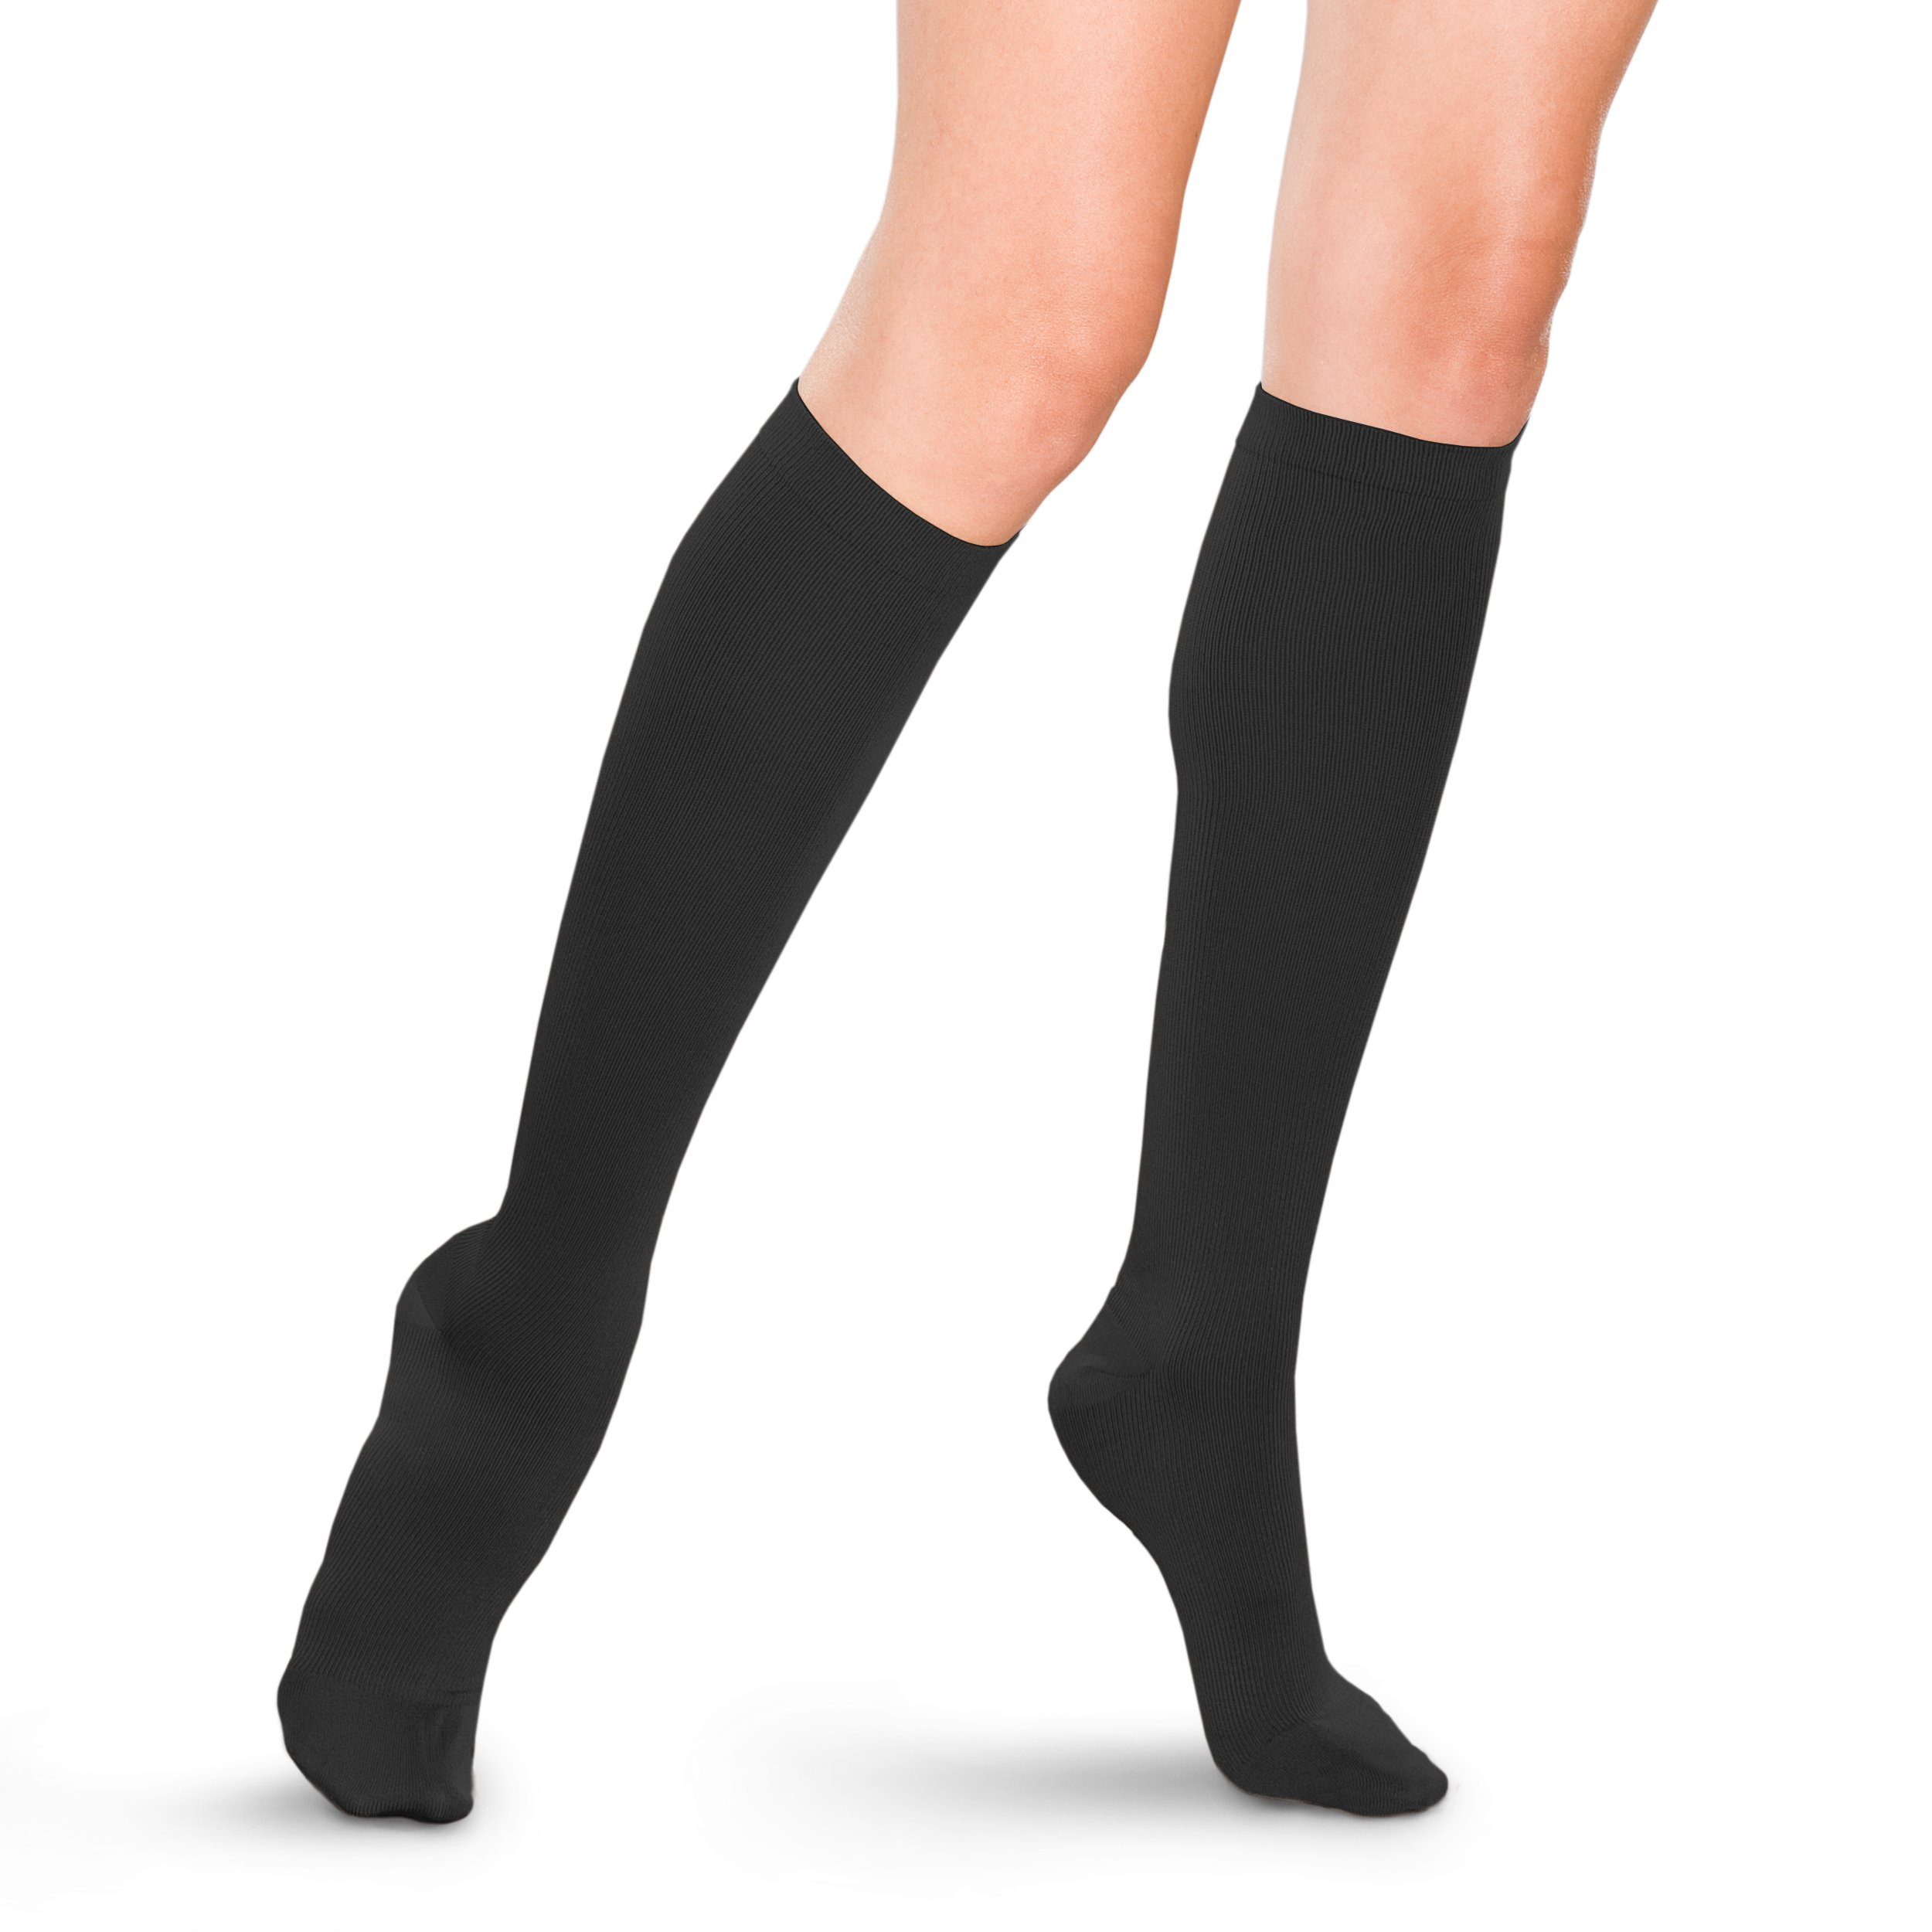 Therafirm Women's Trouser Socks with Mild (15-20mmHg) Compression - Large - Black by Therafirm